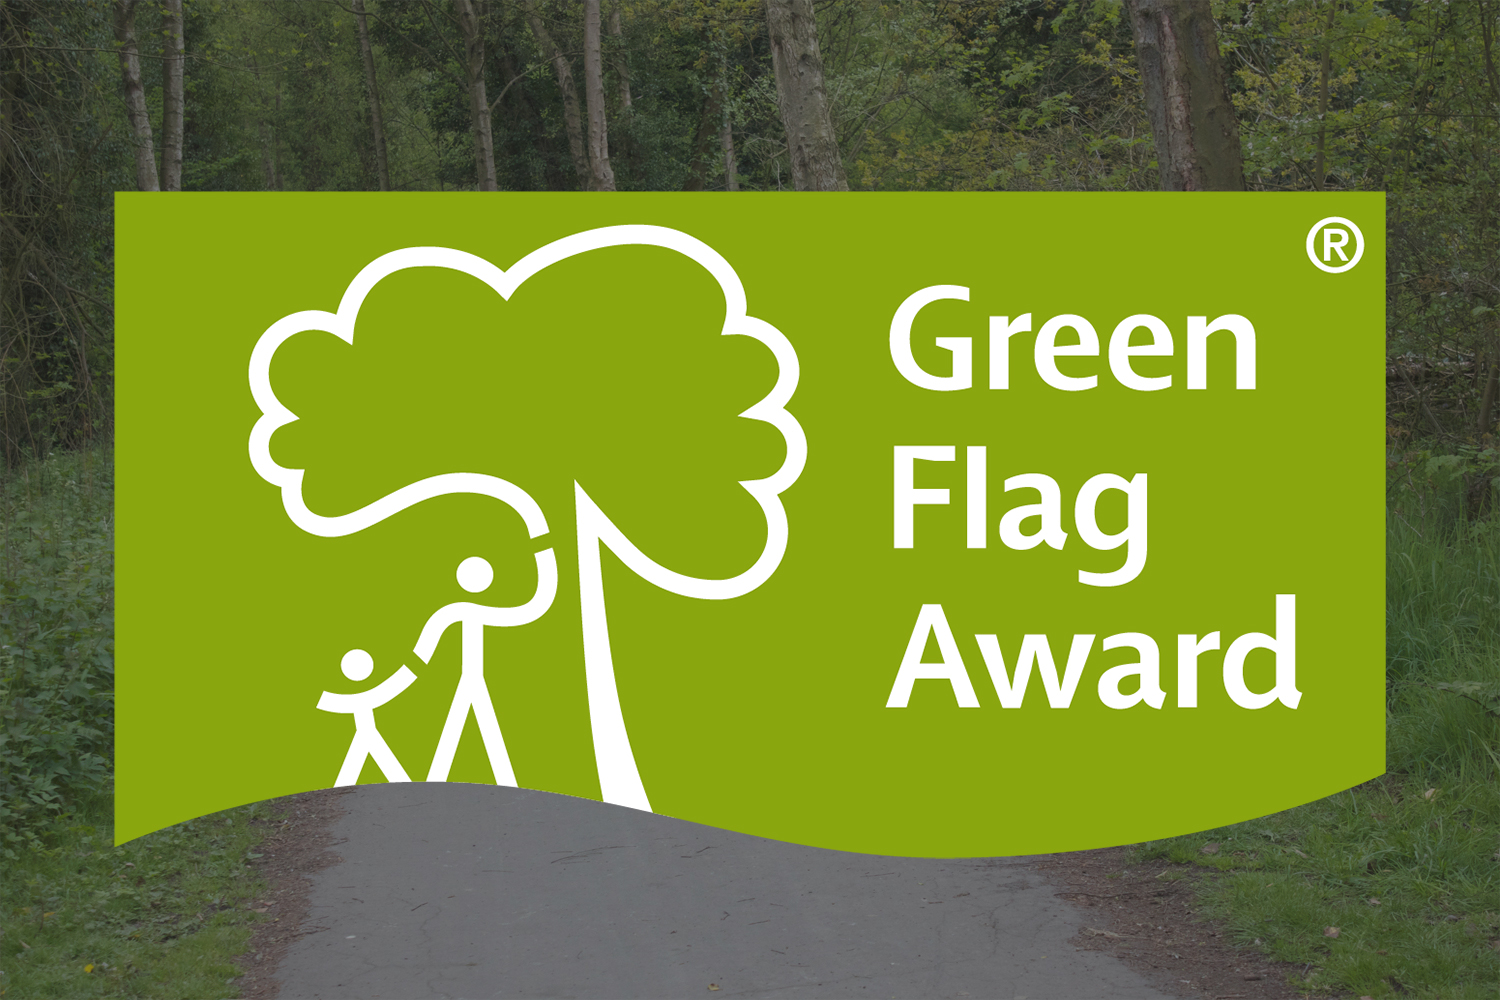 Image of the green flag ward logo